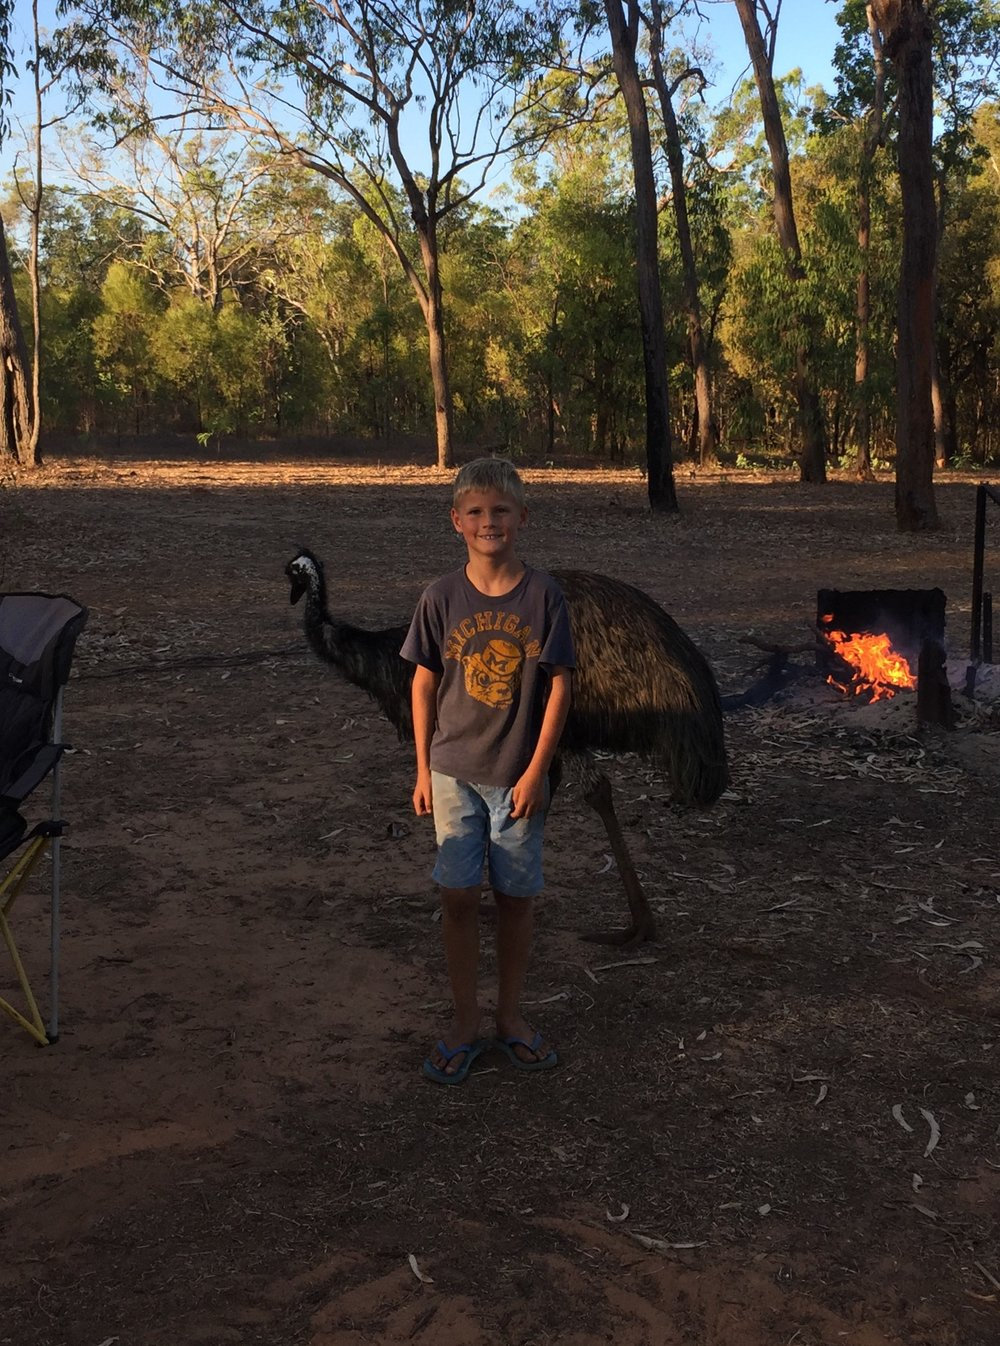 This is a place that we camped with a emu called Ozzie, she tried to eat our food.